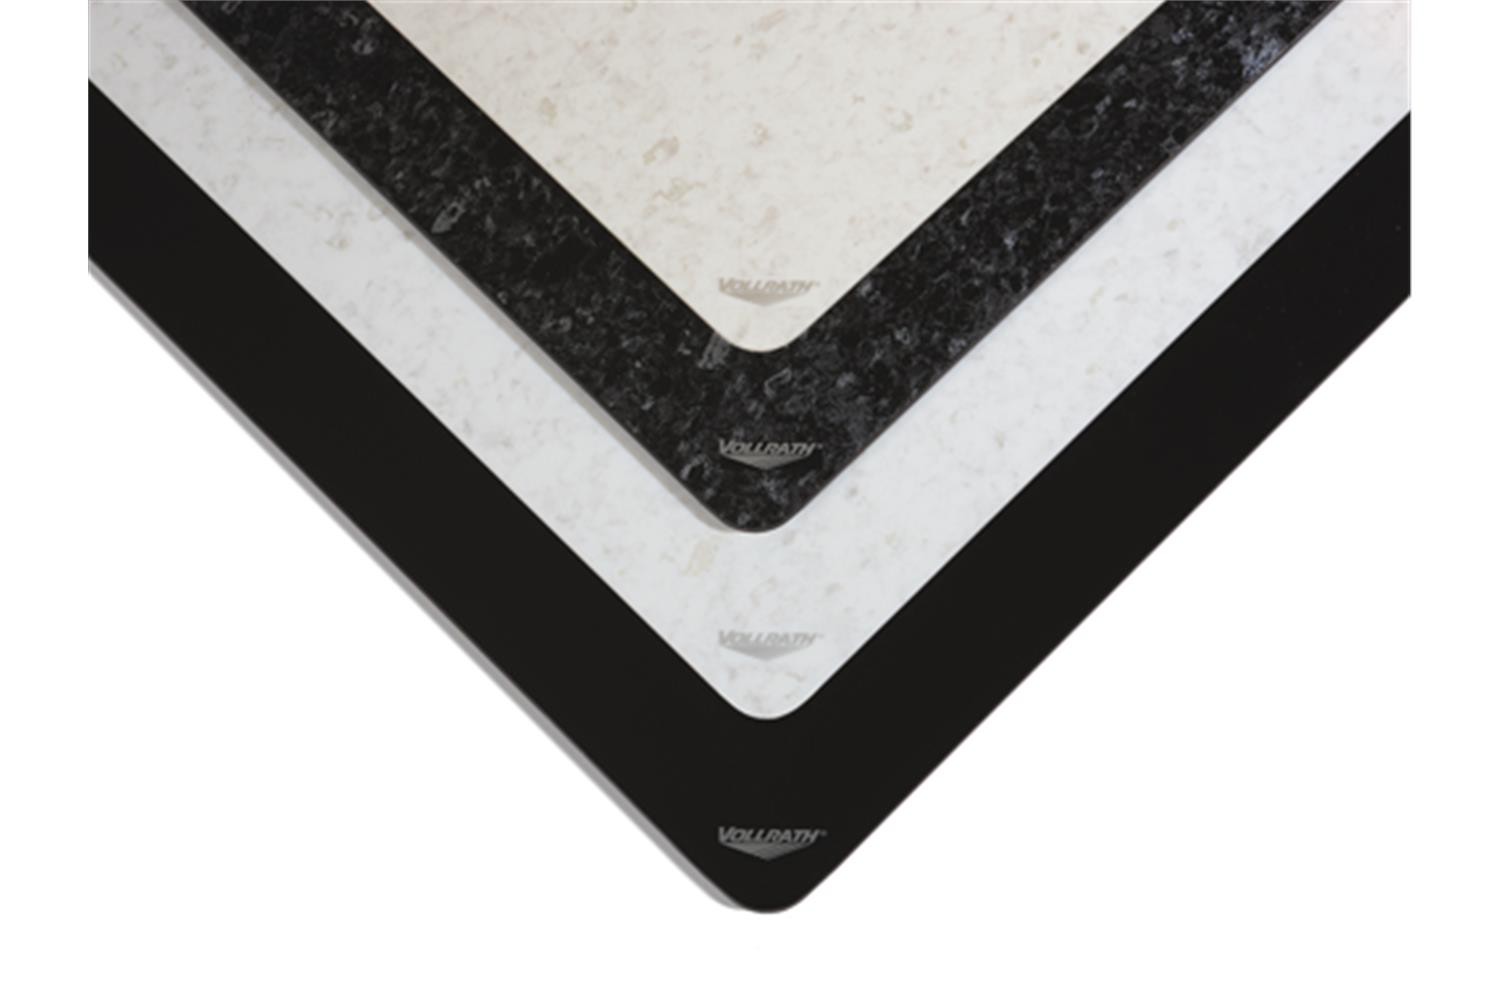 Vollrath 5960835 Bisque Granite Ceramic Template with 5950145 Induction Warmer